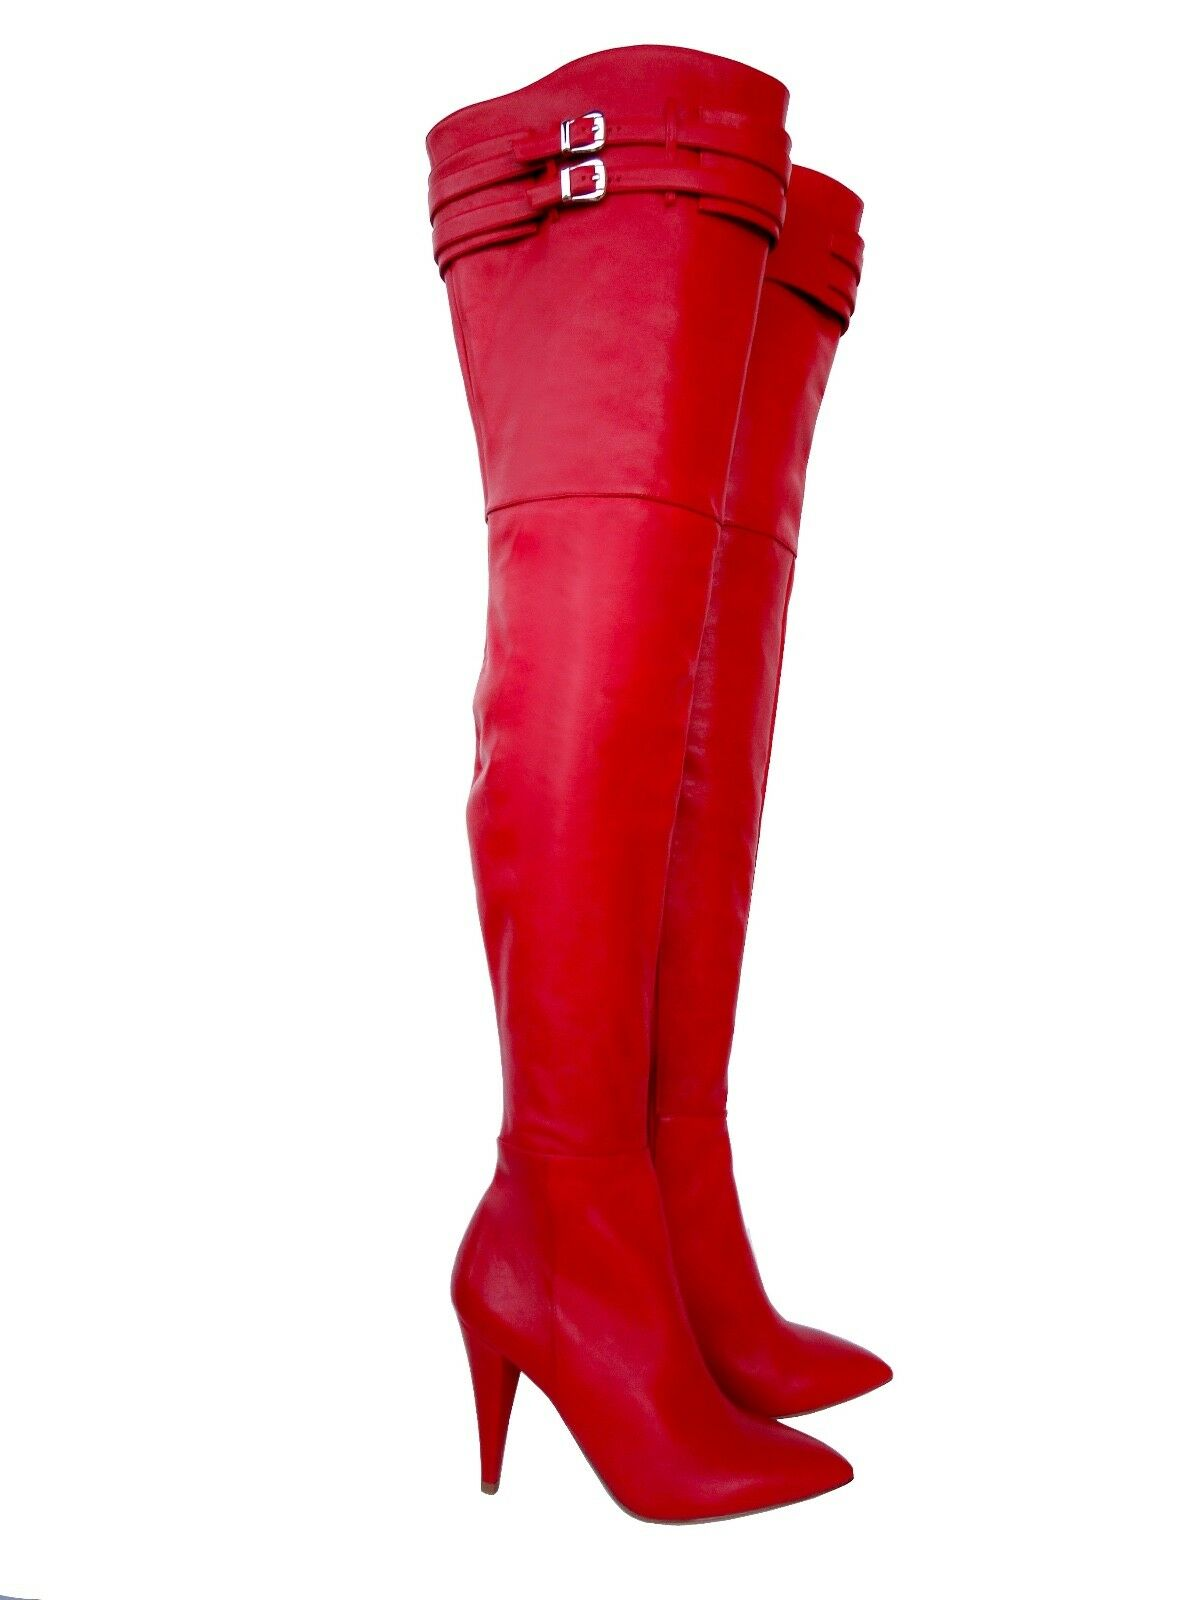 CQ COUTURE 9 CM CUSTOM OVERKNEE BOOTS STIEFEL STIVALI LEATHER ROSSO BELT RED ROSSO LEATHER 36 9b0ac1